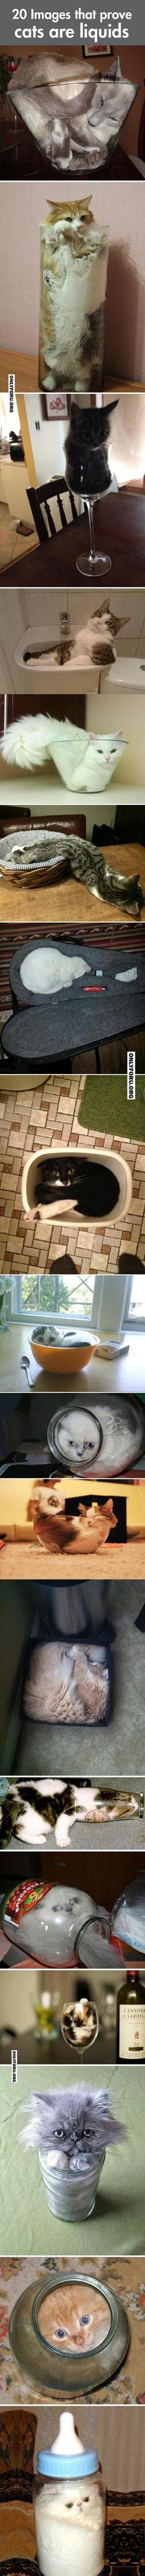 Some images that prove cats are liquids - #OnlyForU, #funny, #lol, #fun, #humor, #rofl, #gif, #troll, #comics, #meme, #gags, #new, #lol pics, #lol gifs, #Funny pics, #Funny gifs,